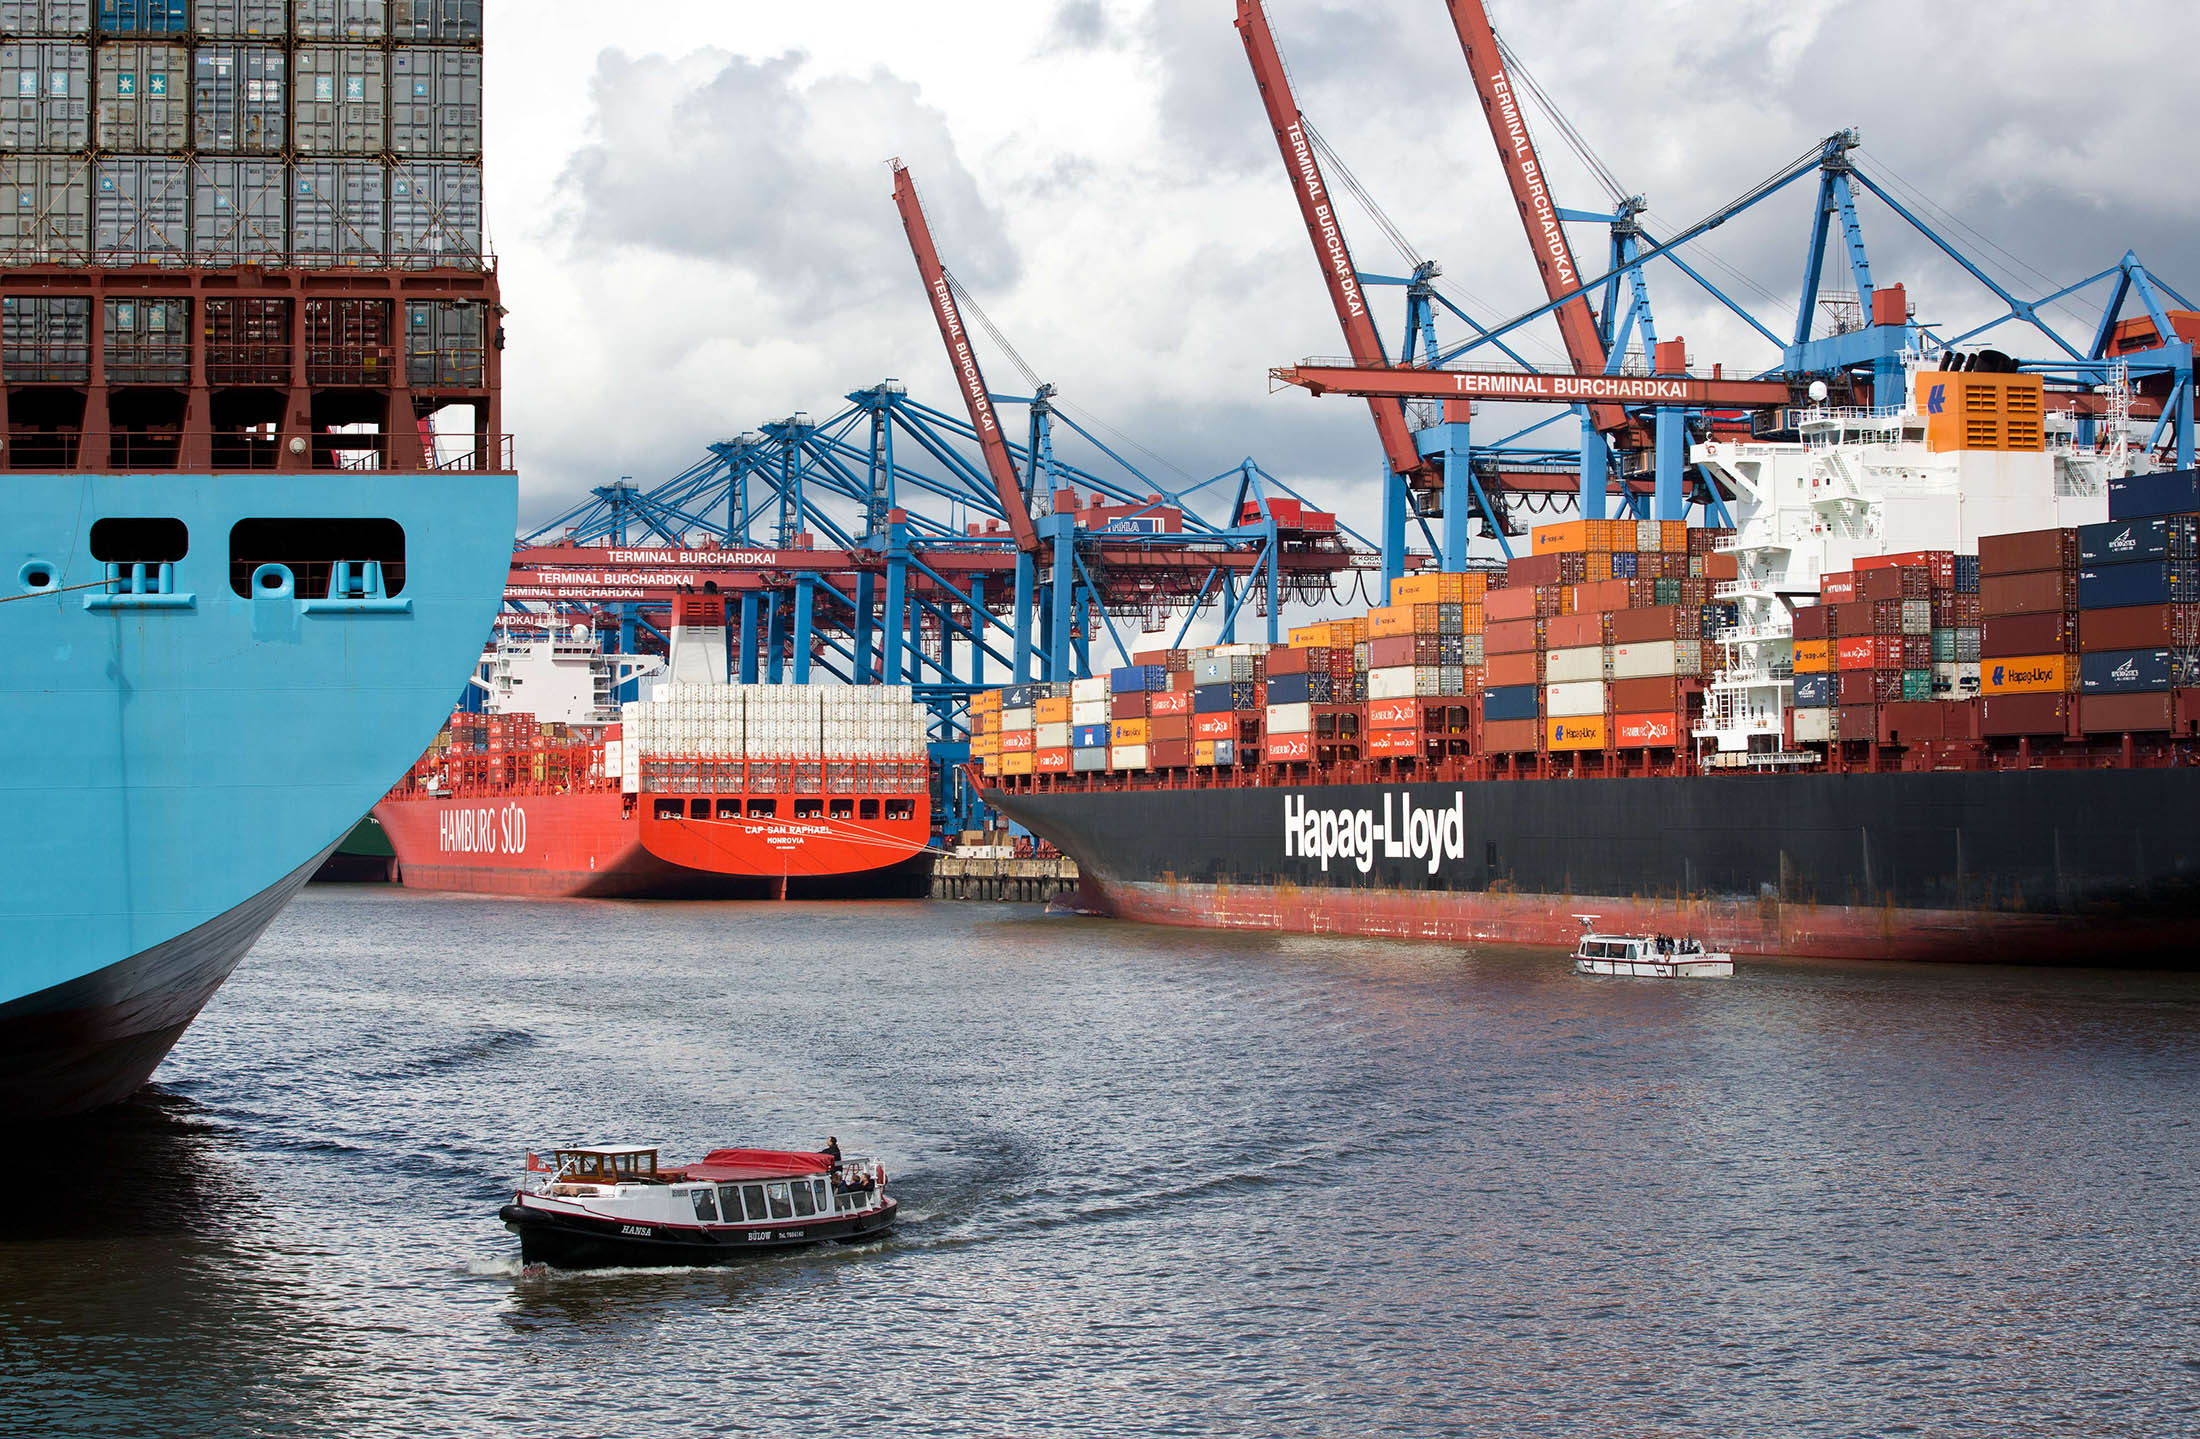 Hapag-Lloyd, Five Asian Liners Form New Shipping Alliance - Bloomberg